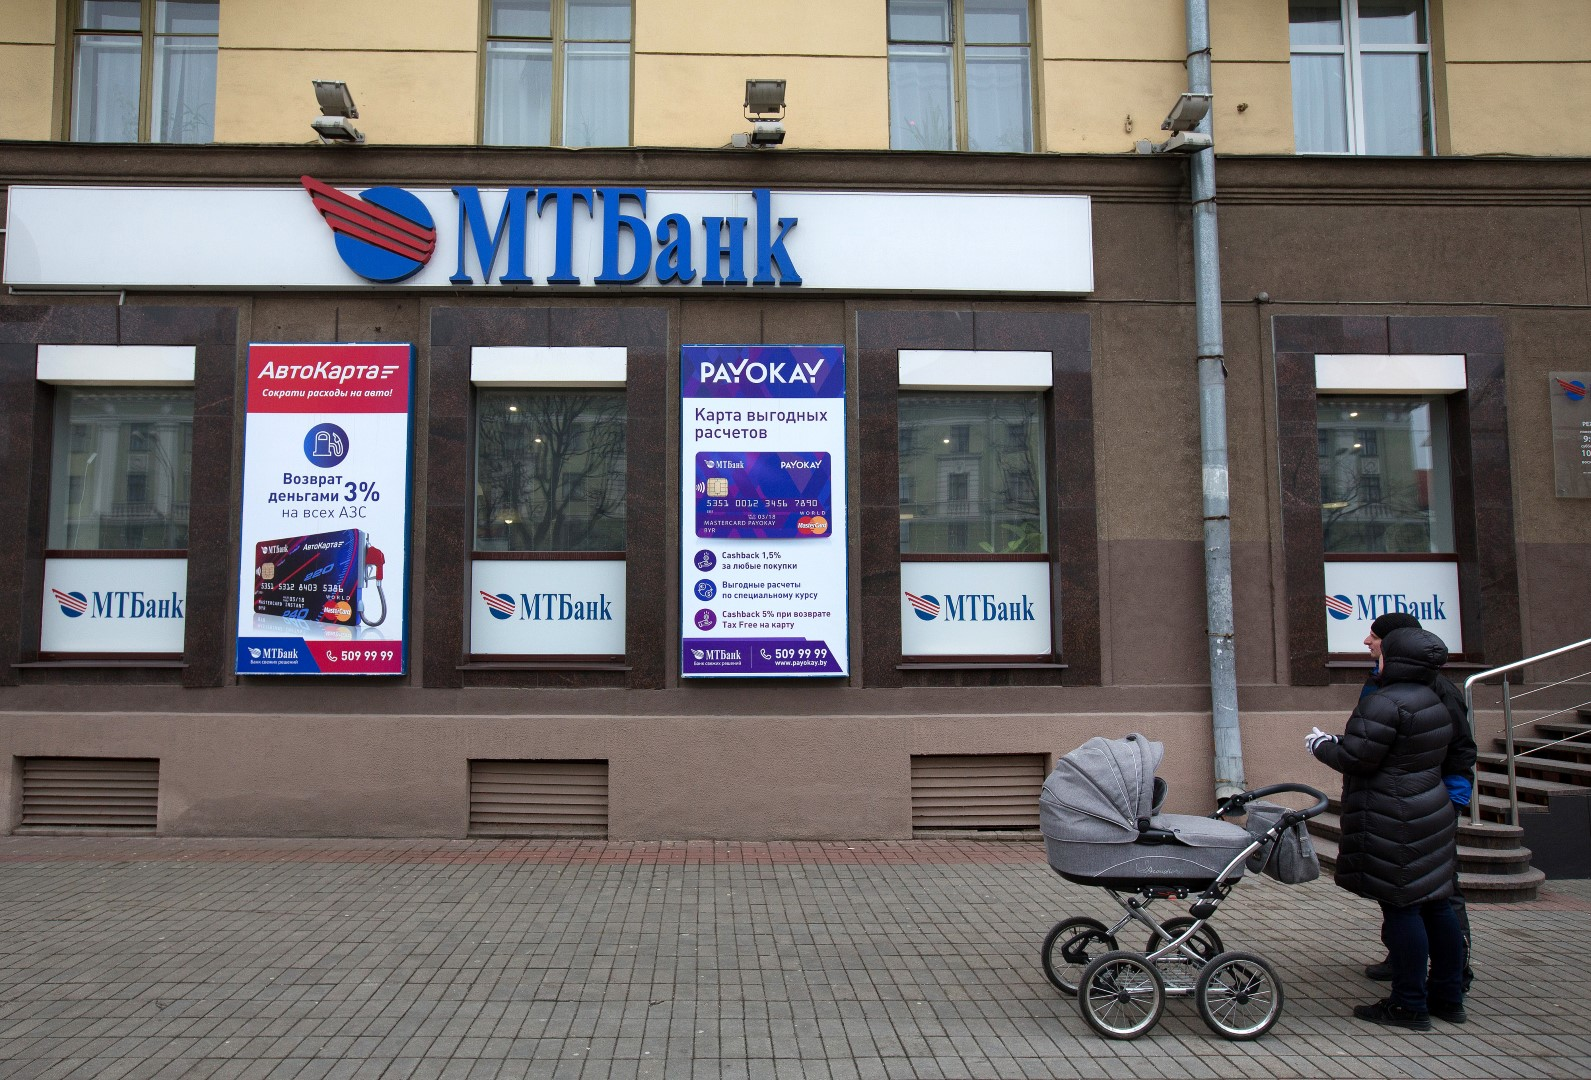 Pedestrians pause outside a branch of the Minsk Transit Bank CJSC, also known as MTBank, in Minsk, Belarus, on Wednesday, March 16, 2016. European Union governments scrapped sanctions on leaders of Belarus in an effort to pry the former Soviet republic out of the shadow of the Kremlin. Photographer: Andrey Rudakov/Bloomberg